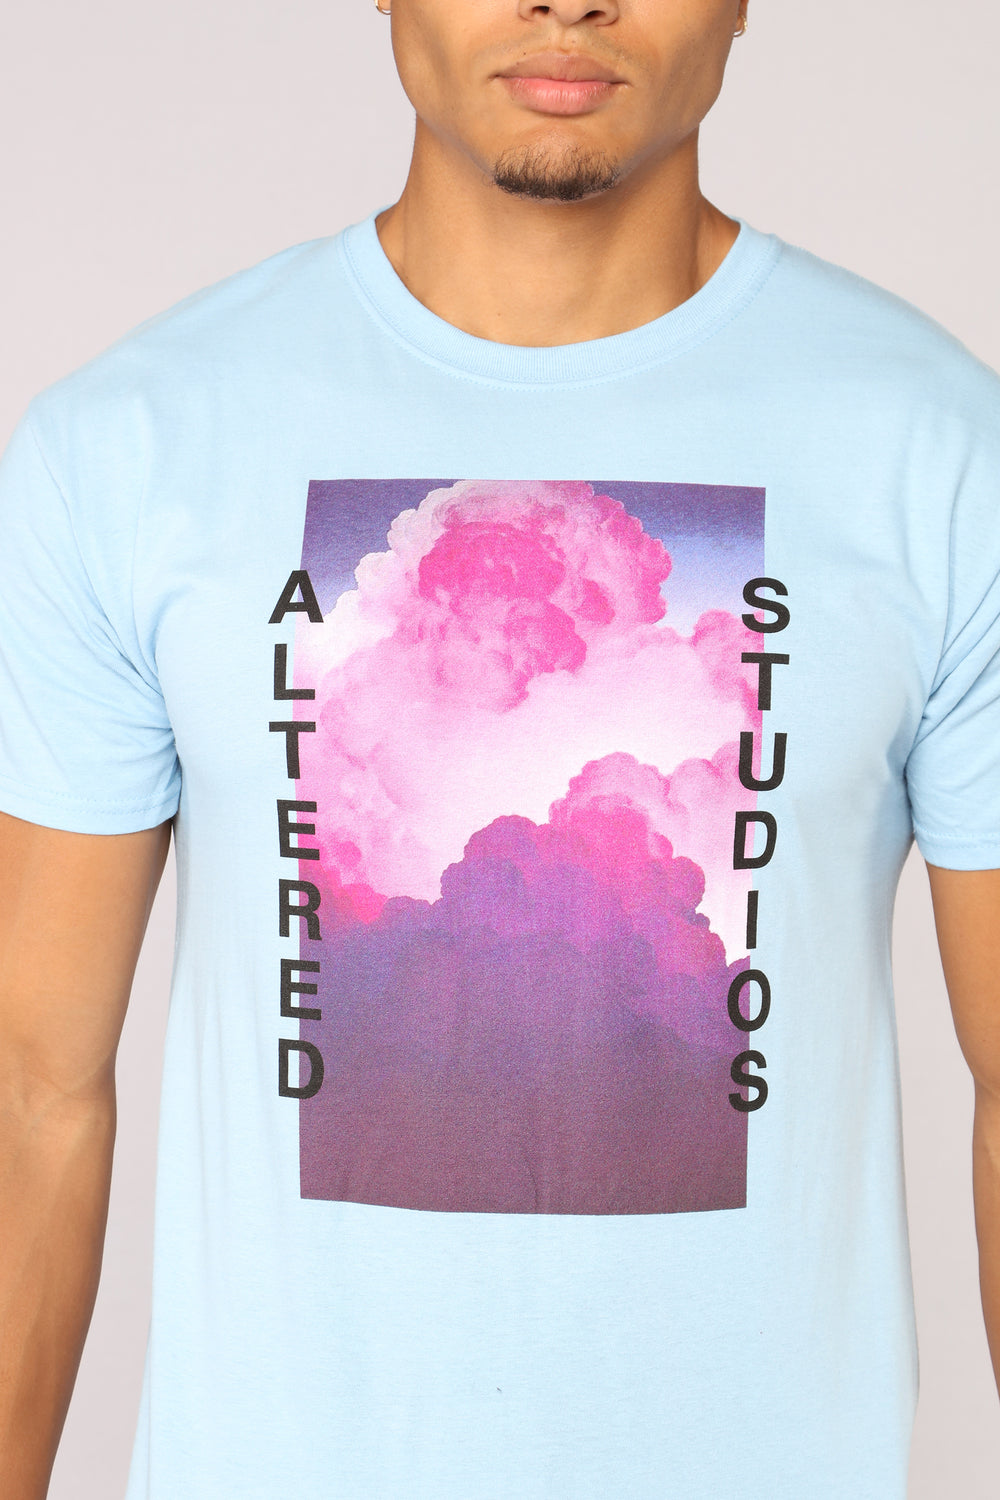 Altered Studios Short Sleeve Tee - Blue